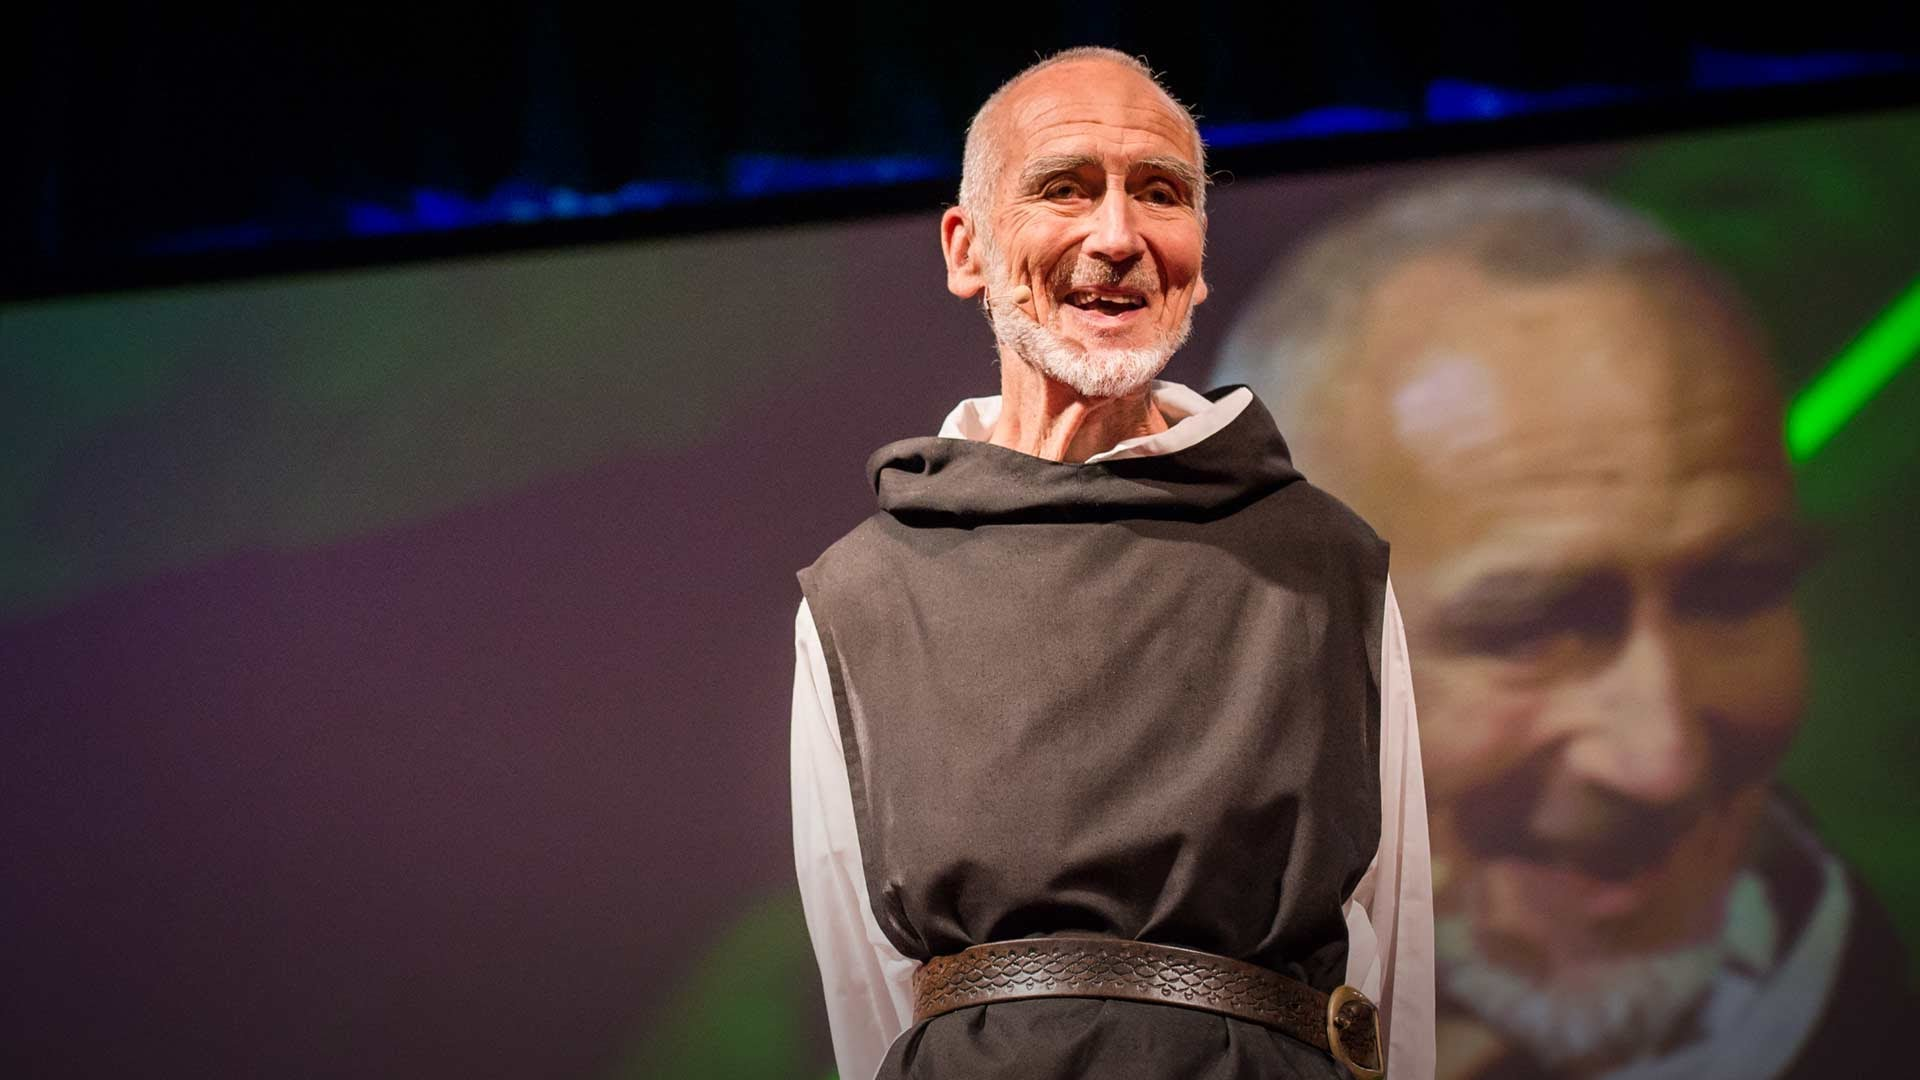 TEDTalks happiness and grateful